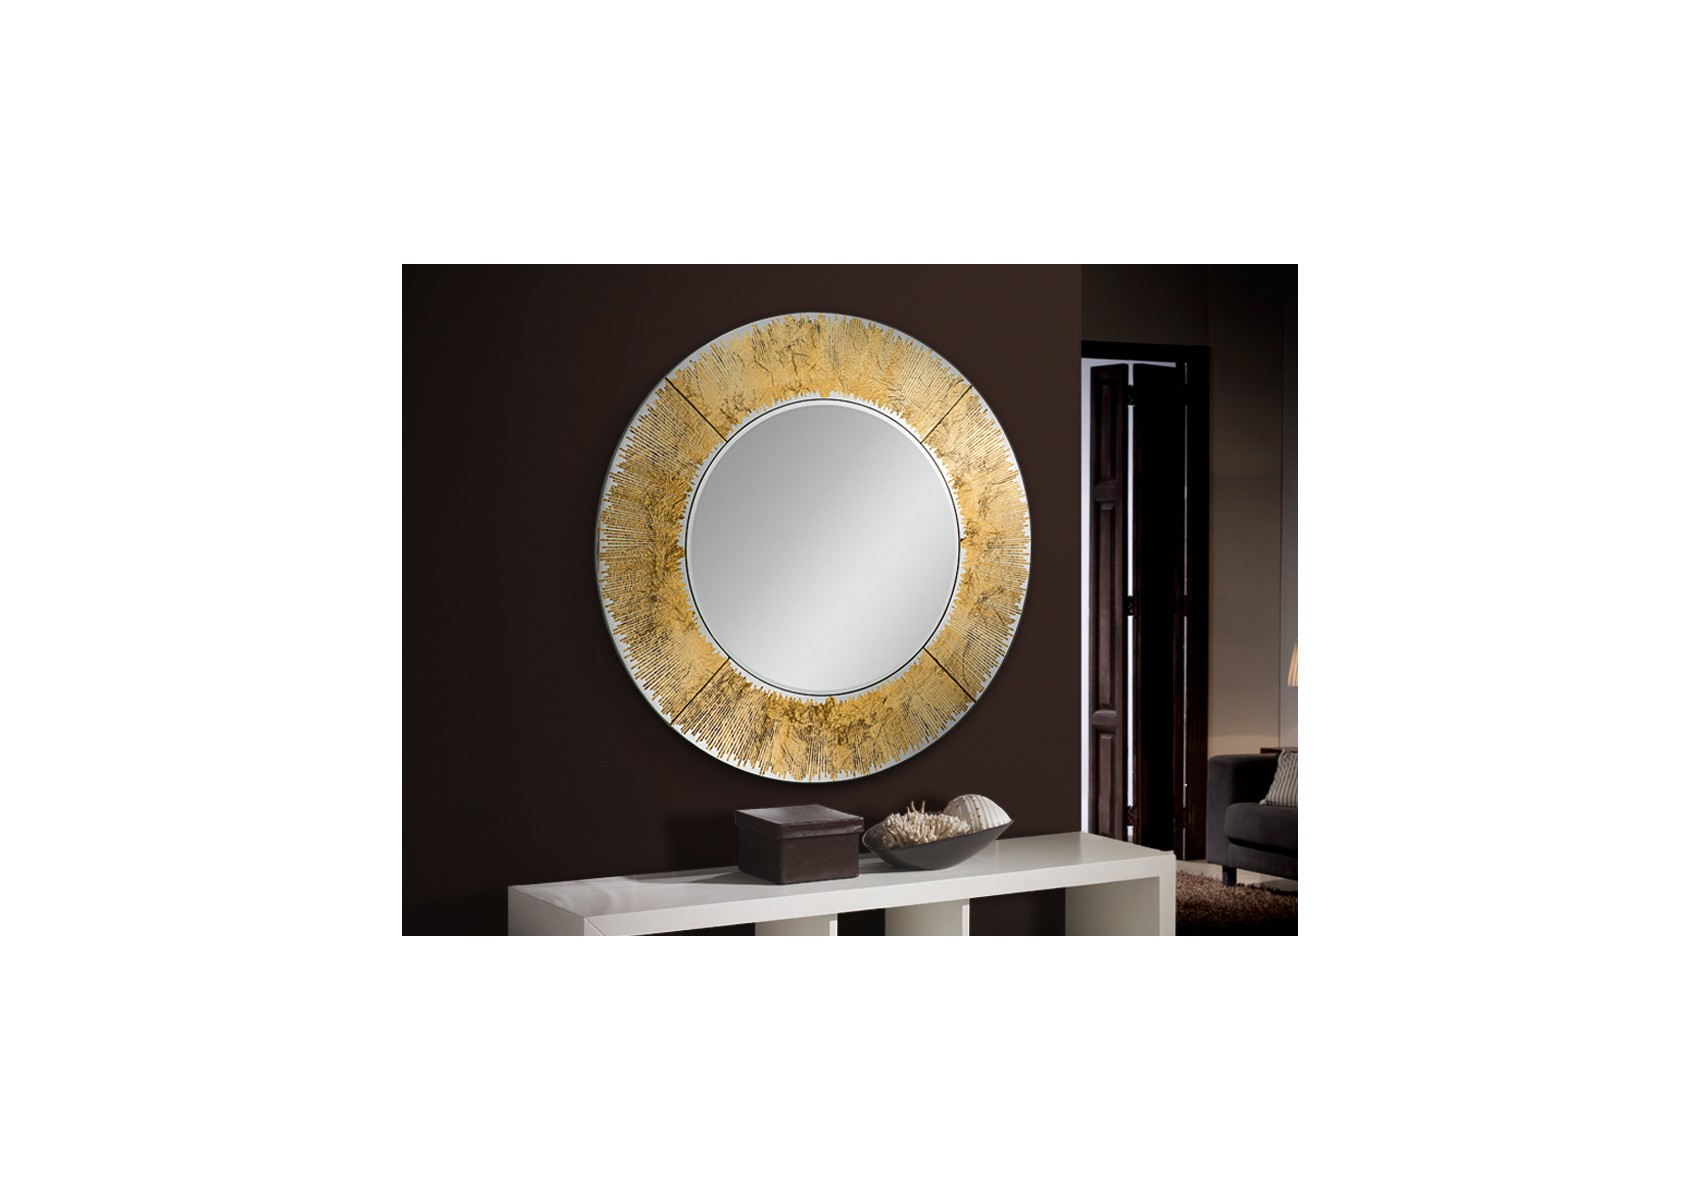 Miroir rond aurore design verre or for Miroir design rond